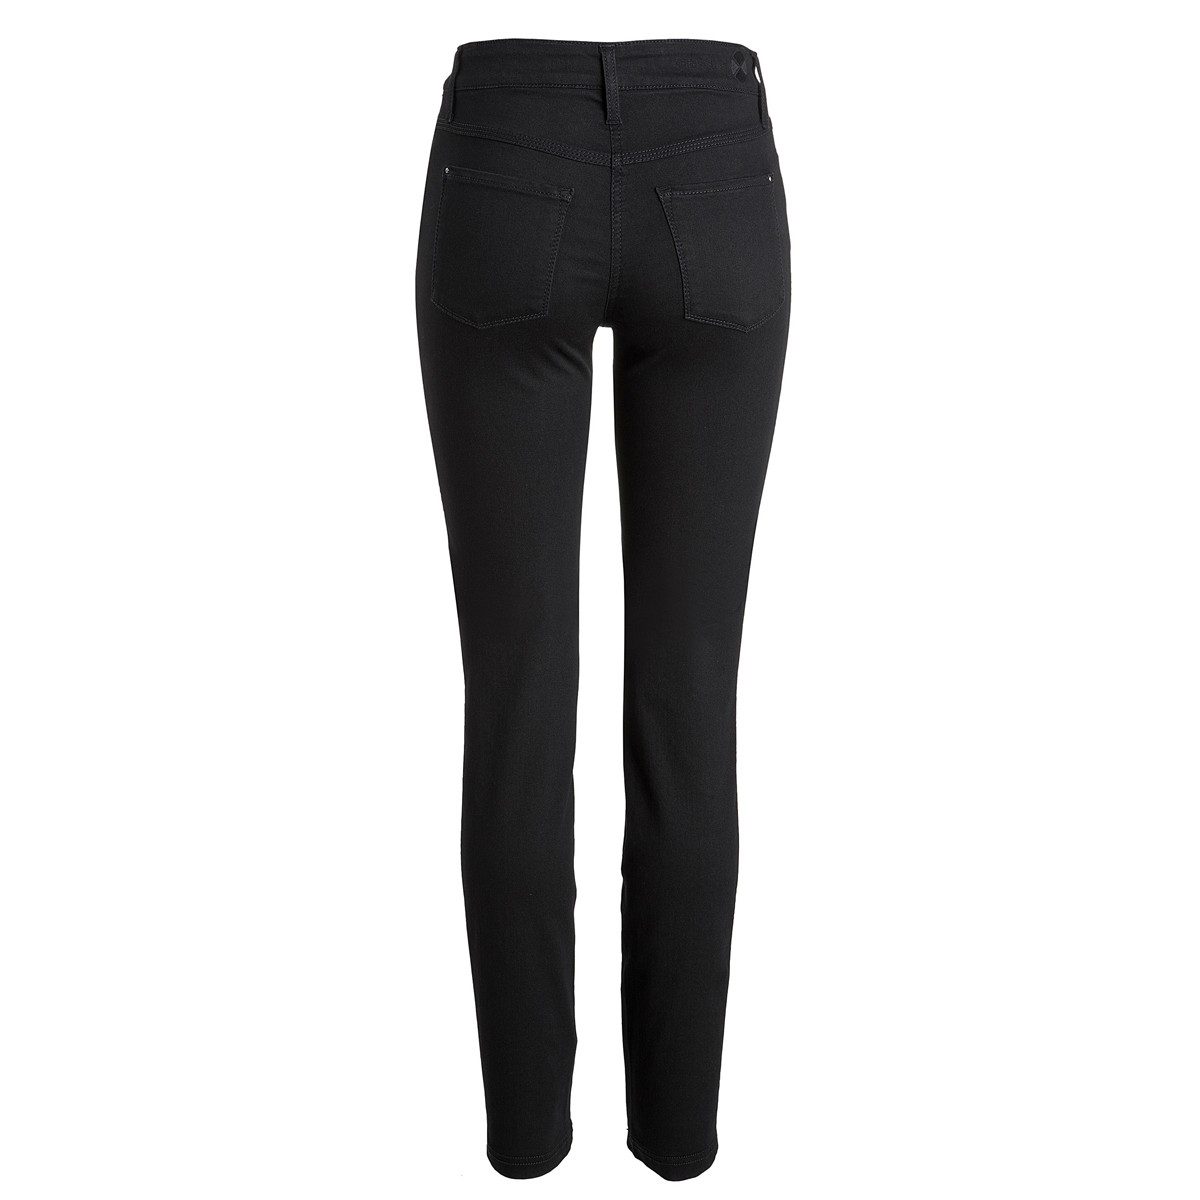 MAC Jeans Dream Skinny Black-black 5402 0355L D999-32